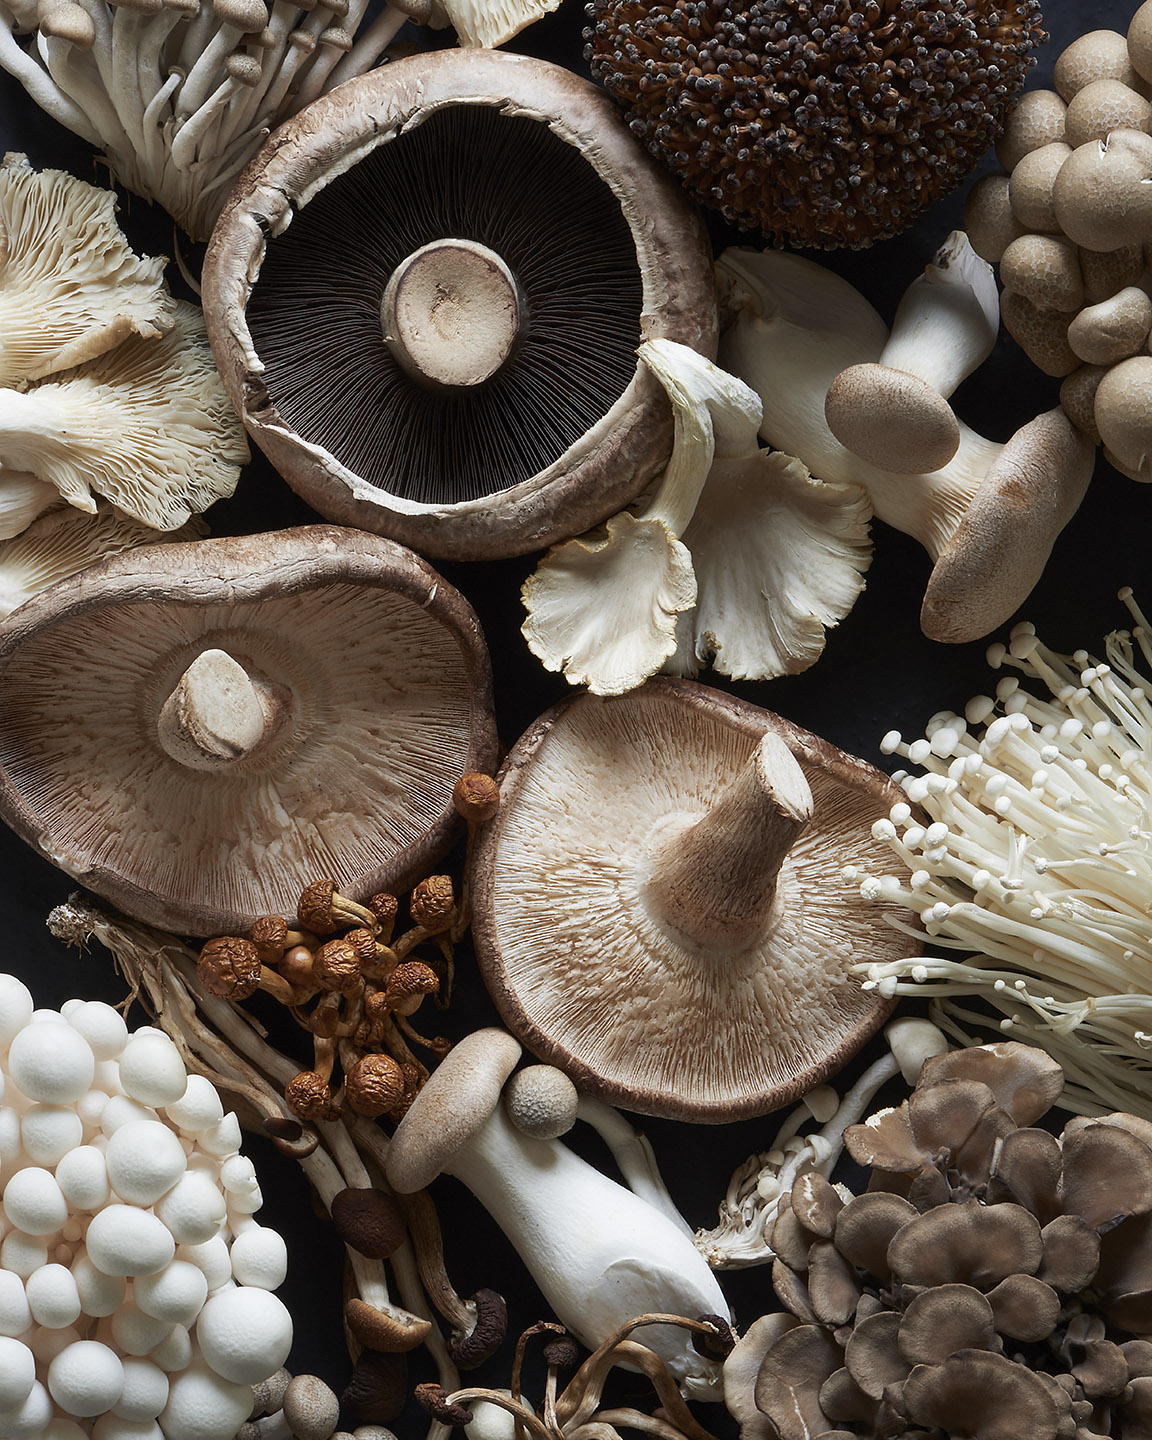 Raw Mushrooms by Matthew Roharik Editorial Photographer Los Angeles